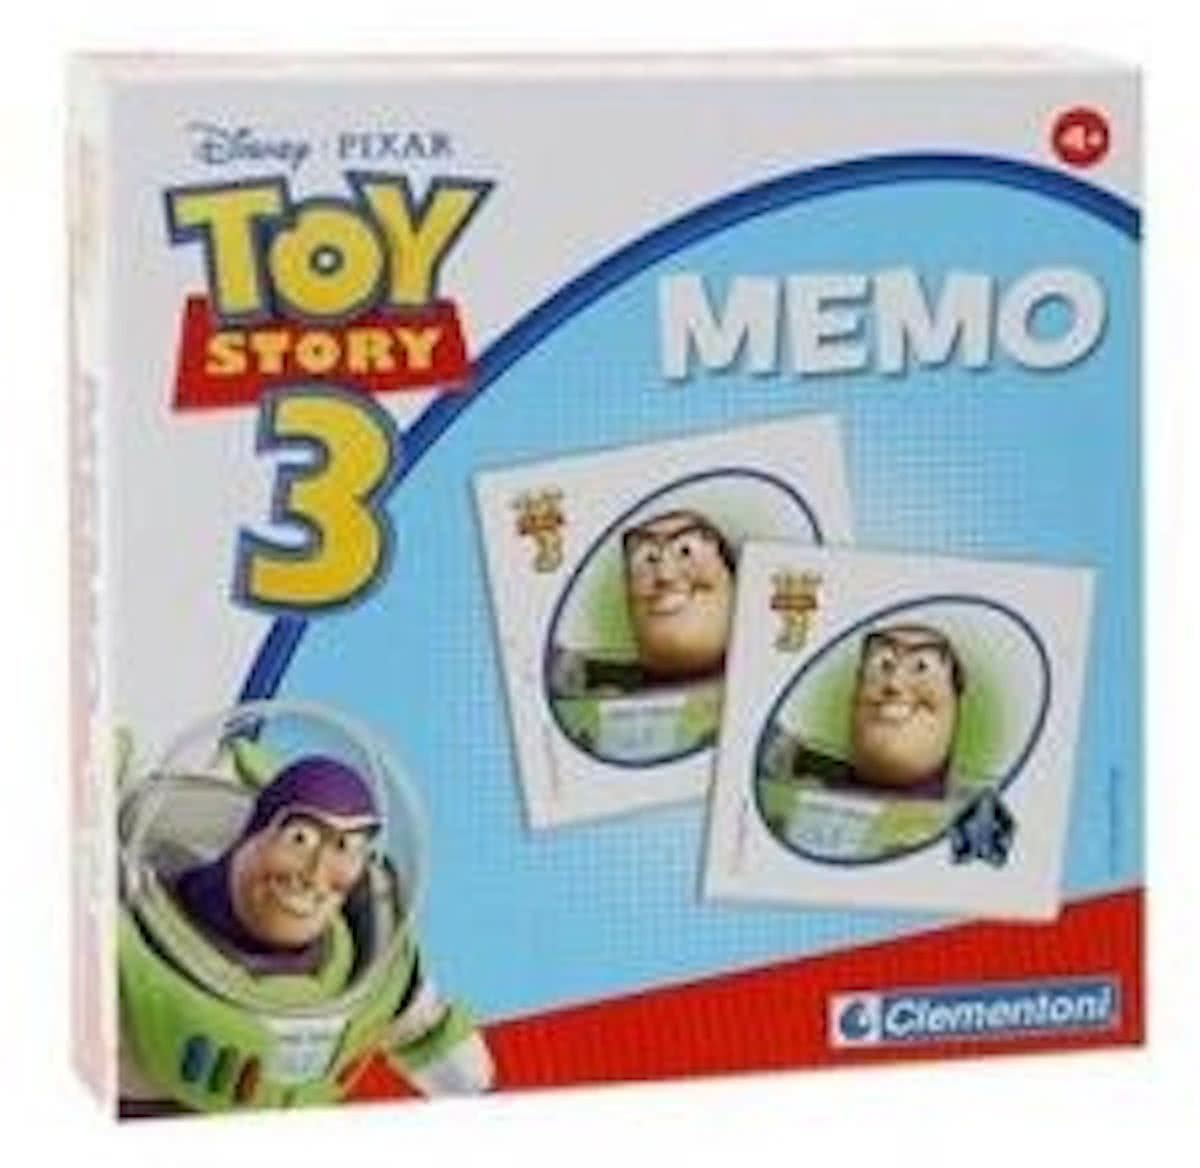 Toy Story 3 Memo